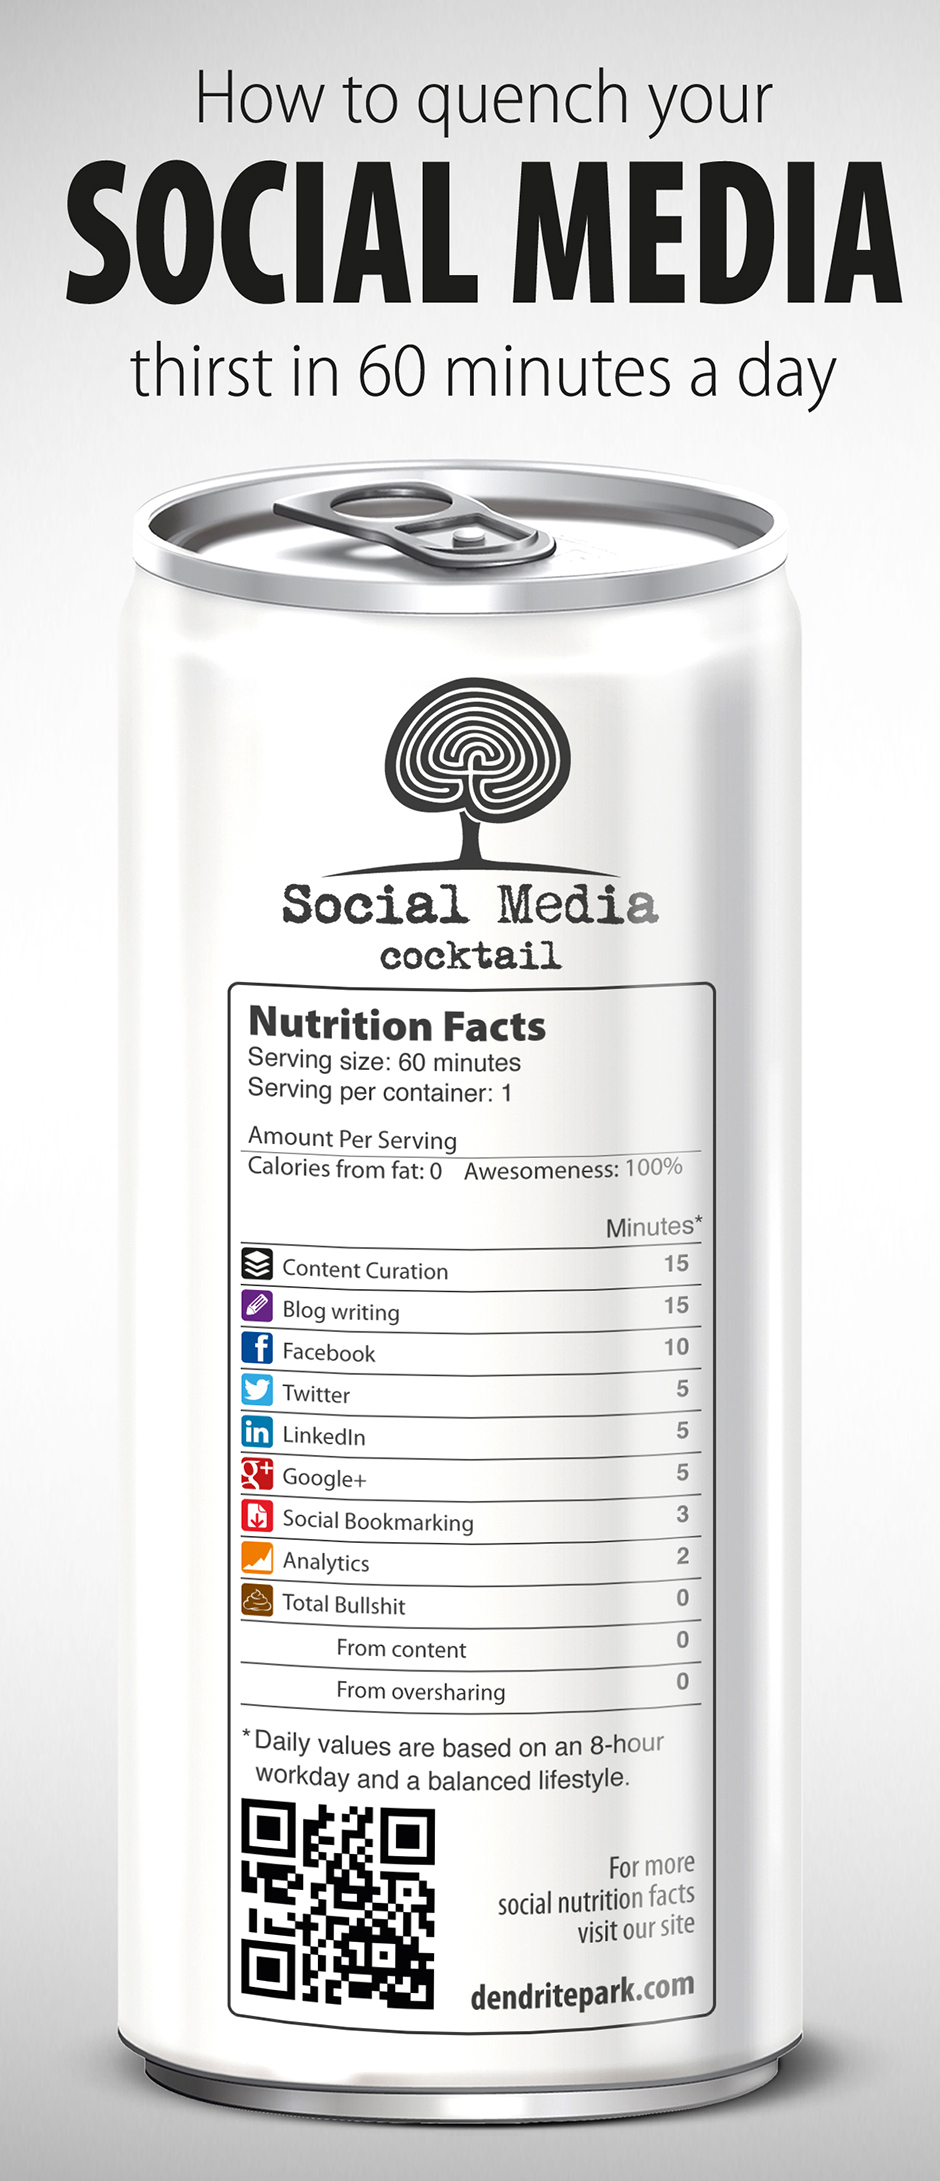 social-media-cocktail1